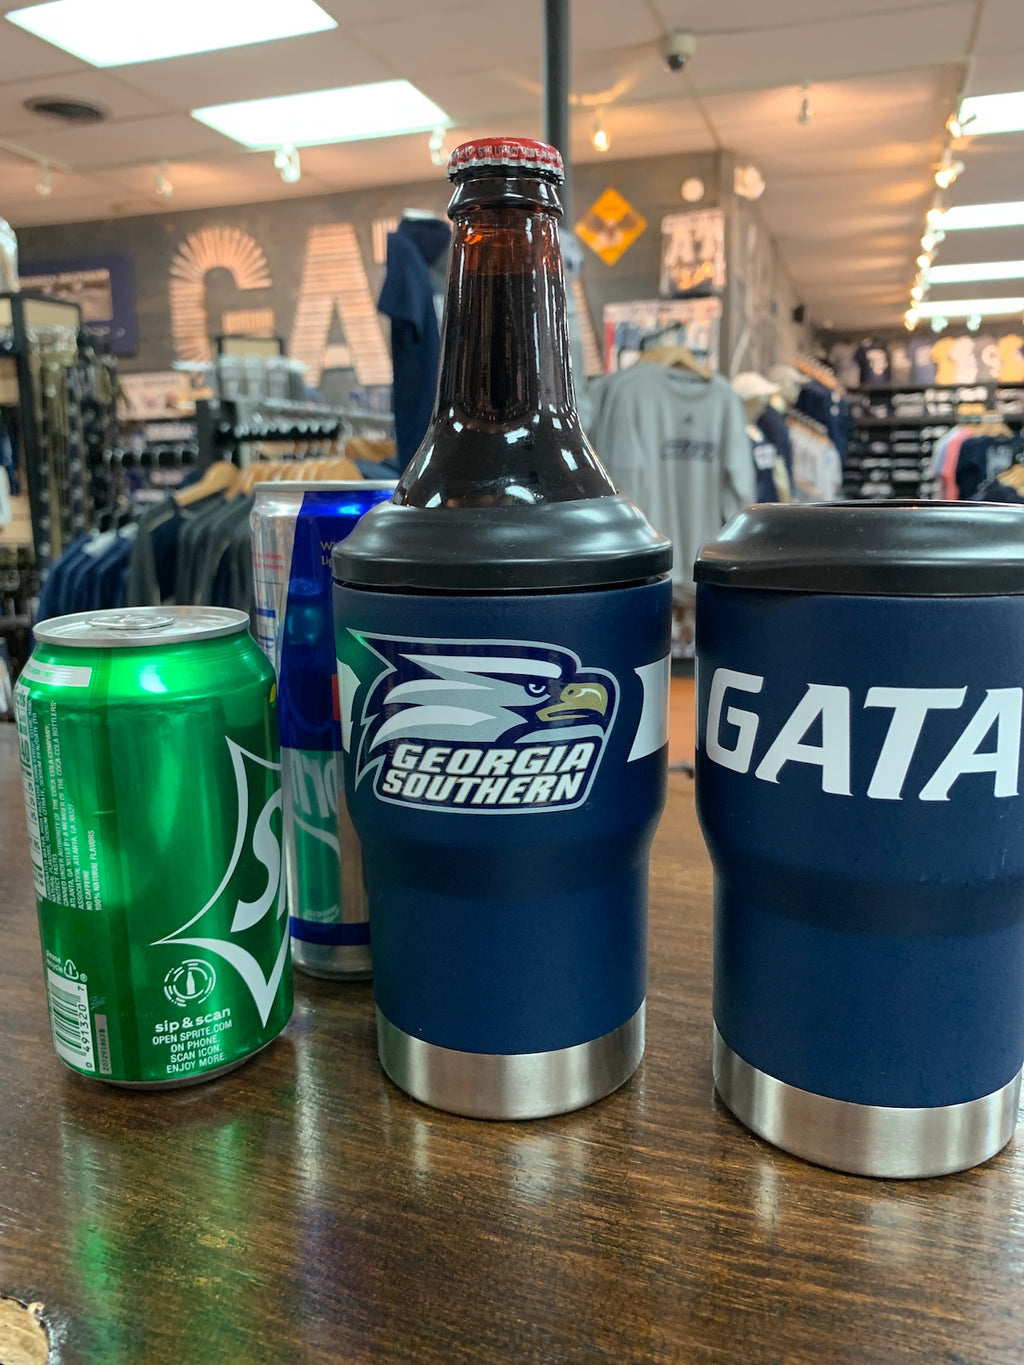 Stainless 3-In-1 Can or Bottle Jacket - Athletic Eagle GATA